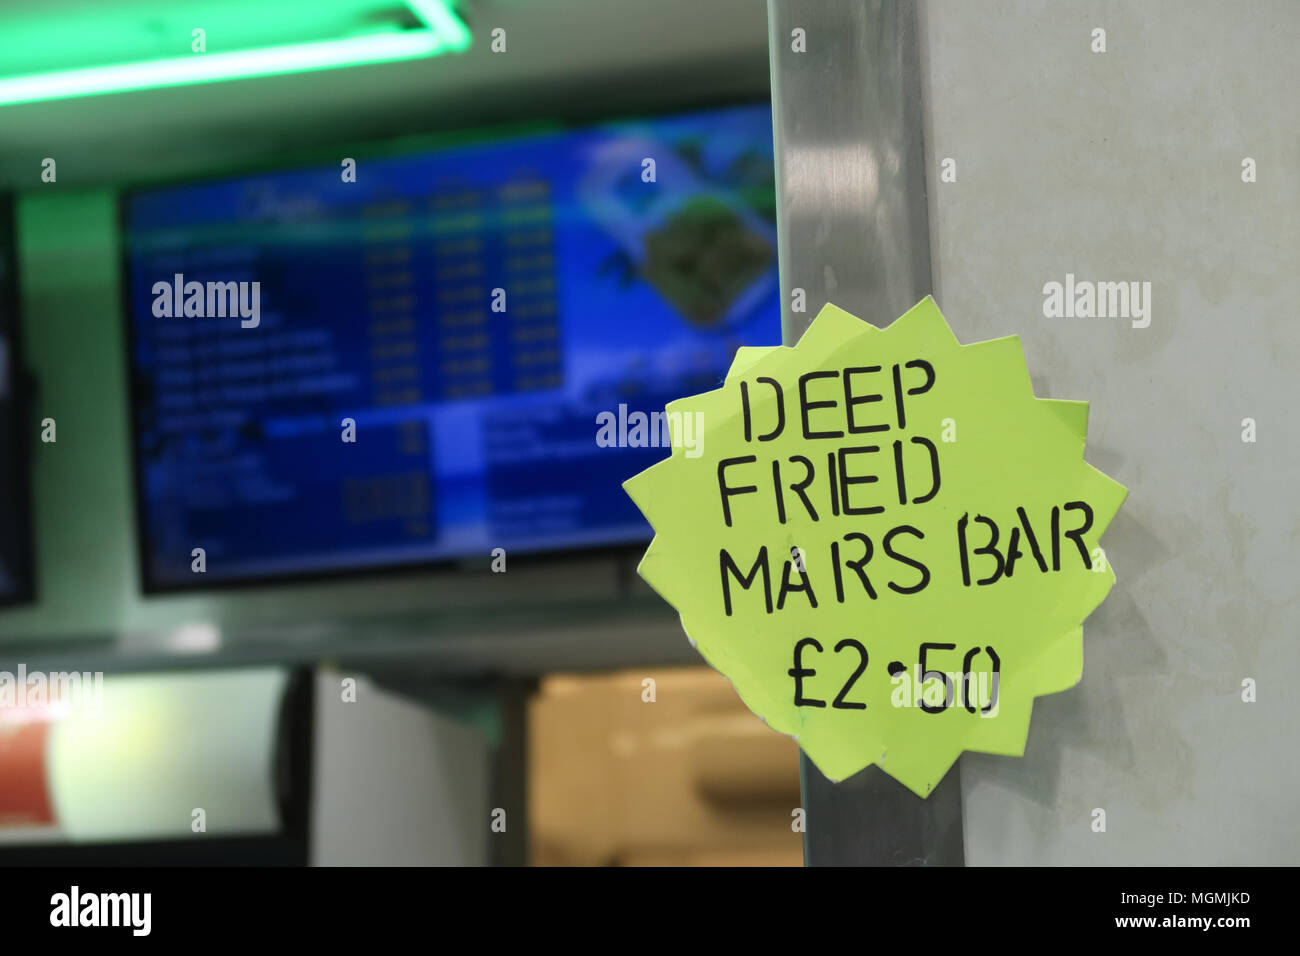 Scottish Deep Fried Mars Bar - Stock Image